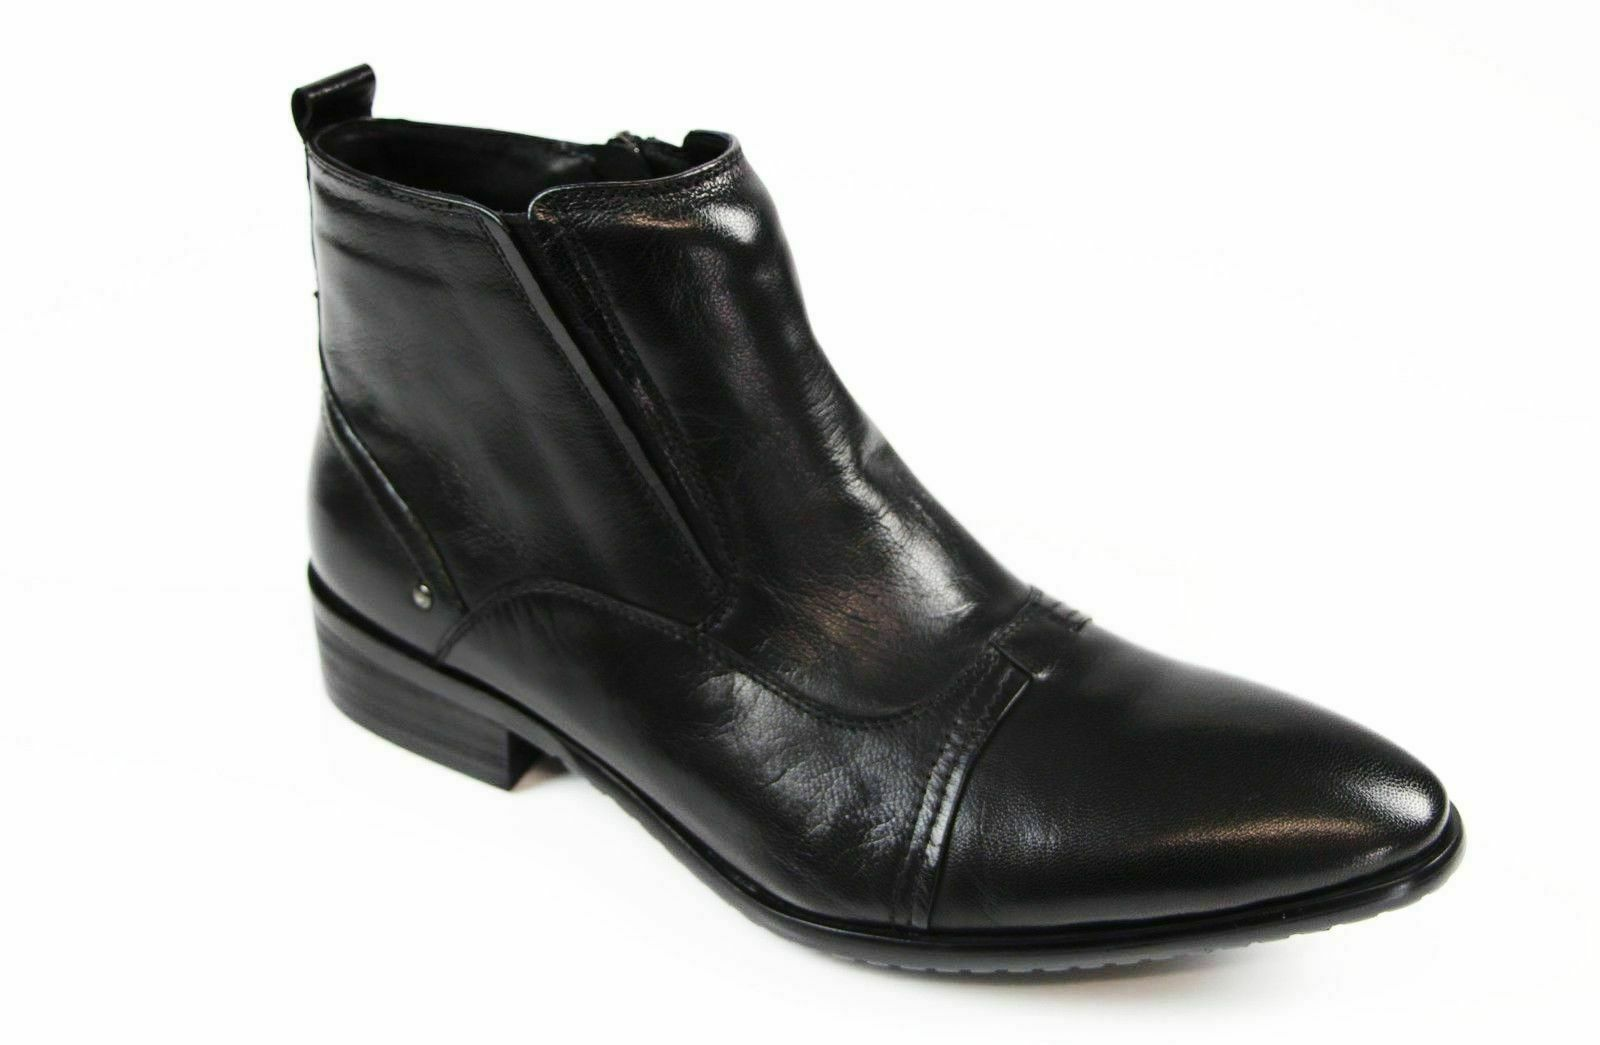 Mens Zasel Cannon Black Formal Casual Leather Zip Shoes Formal Dress Boots